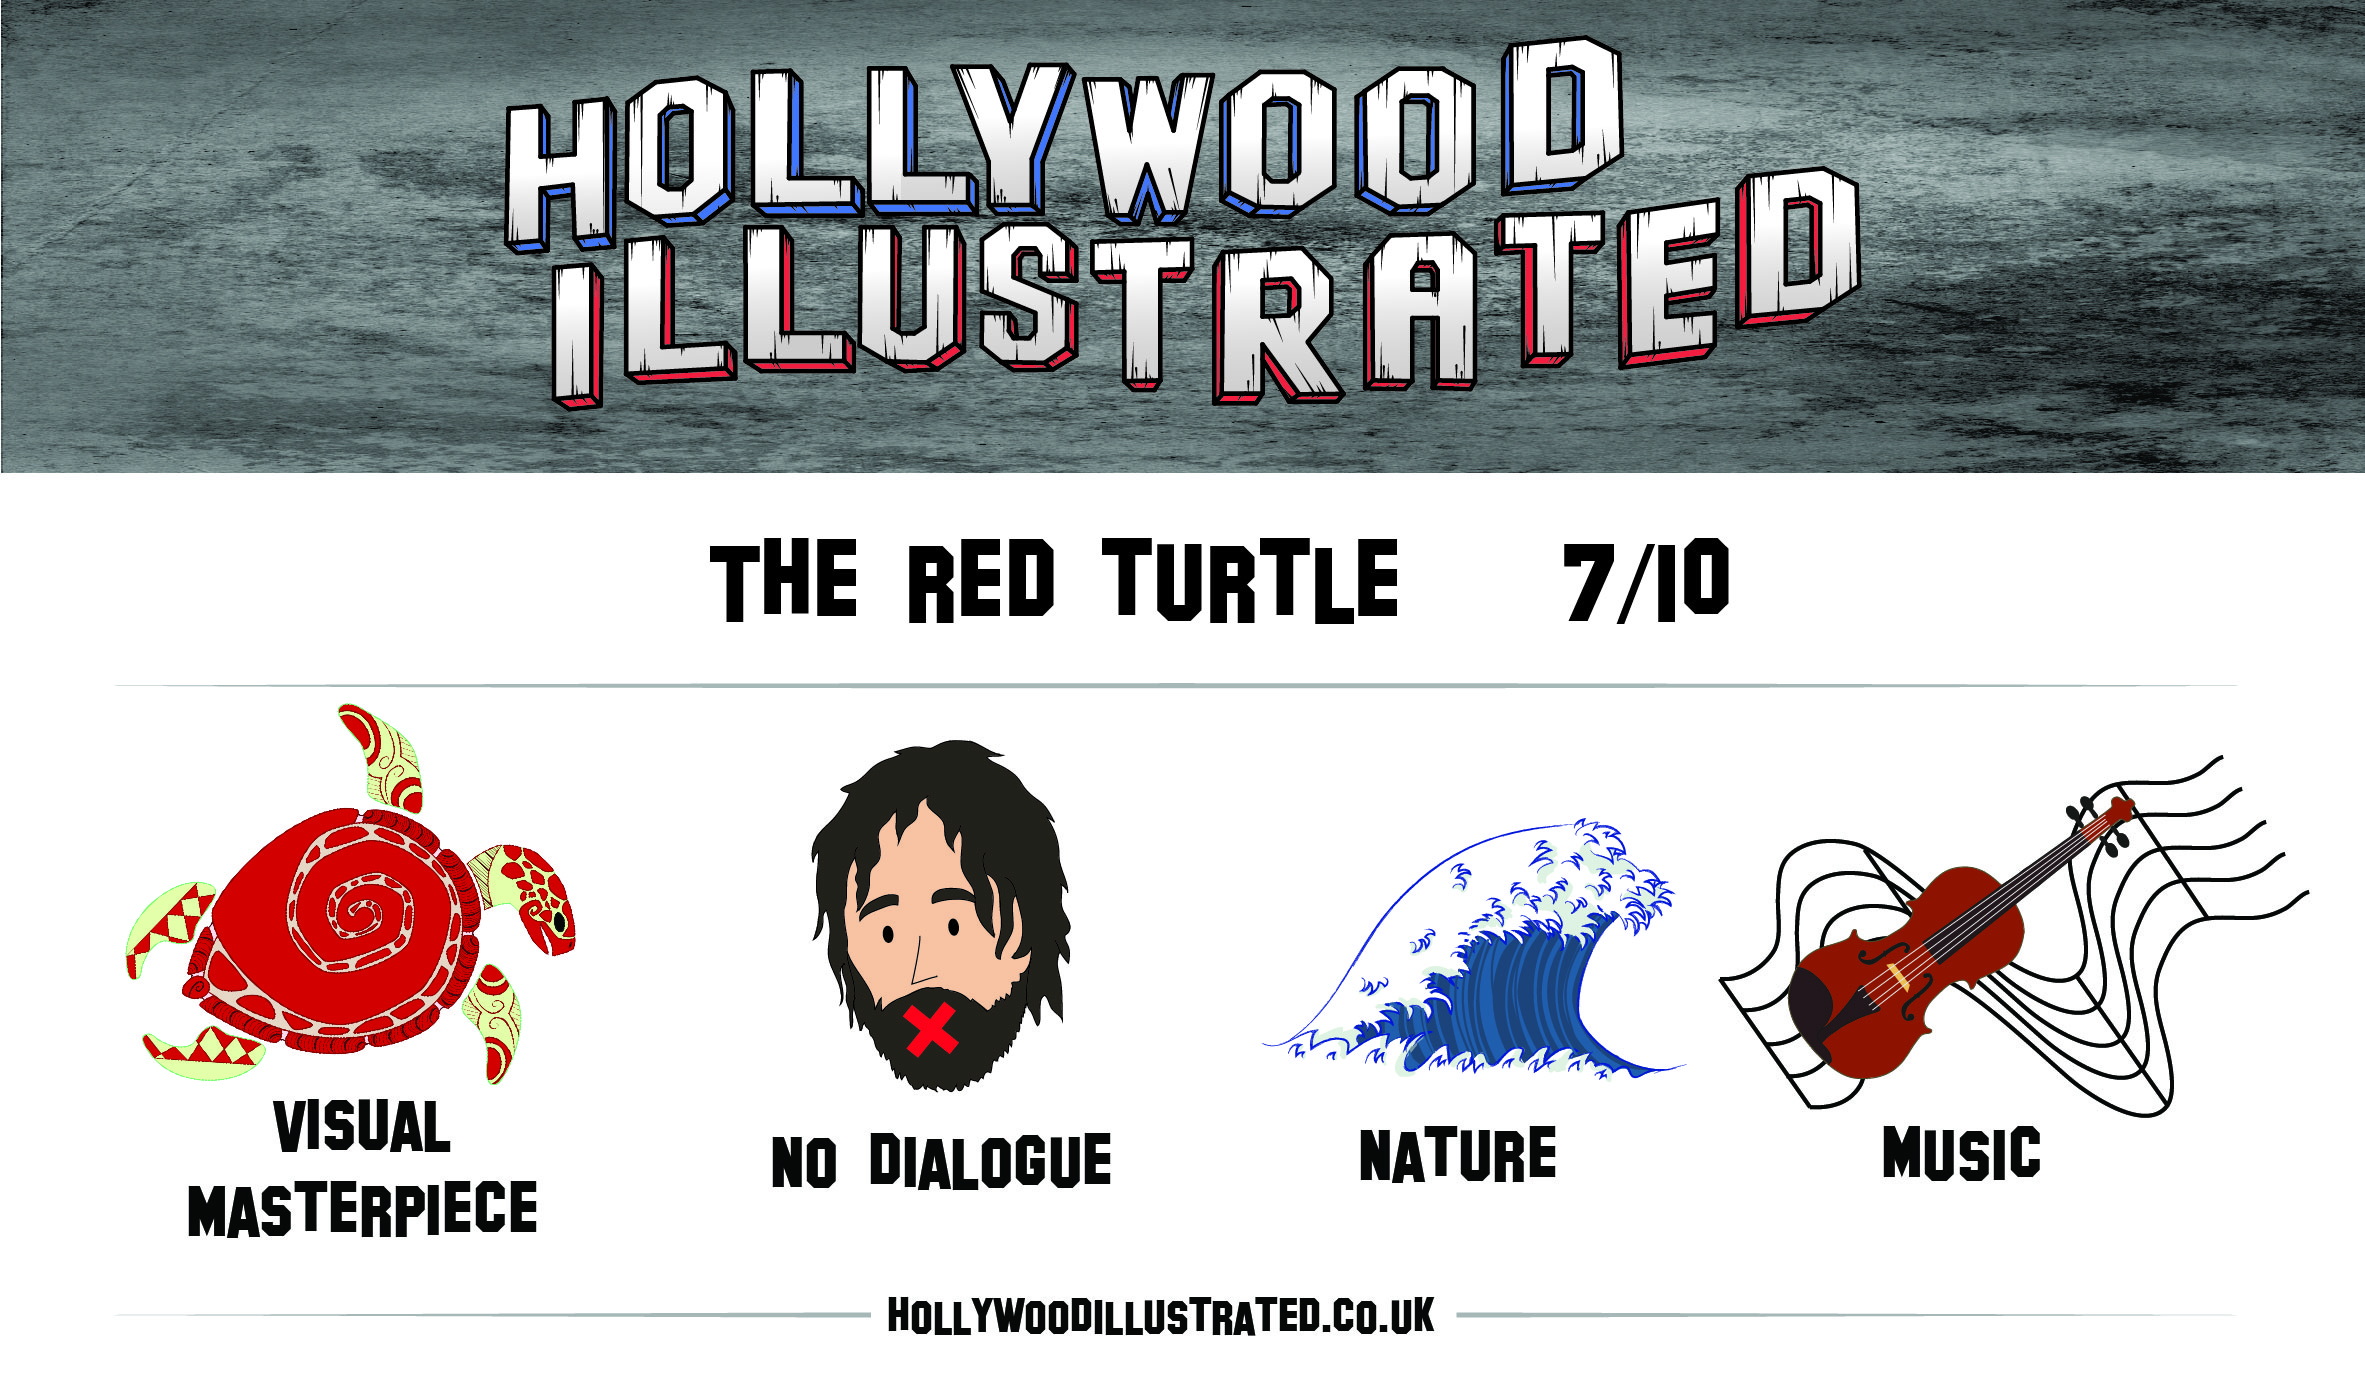 The Red Turtle Hollywood Illustrated